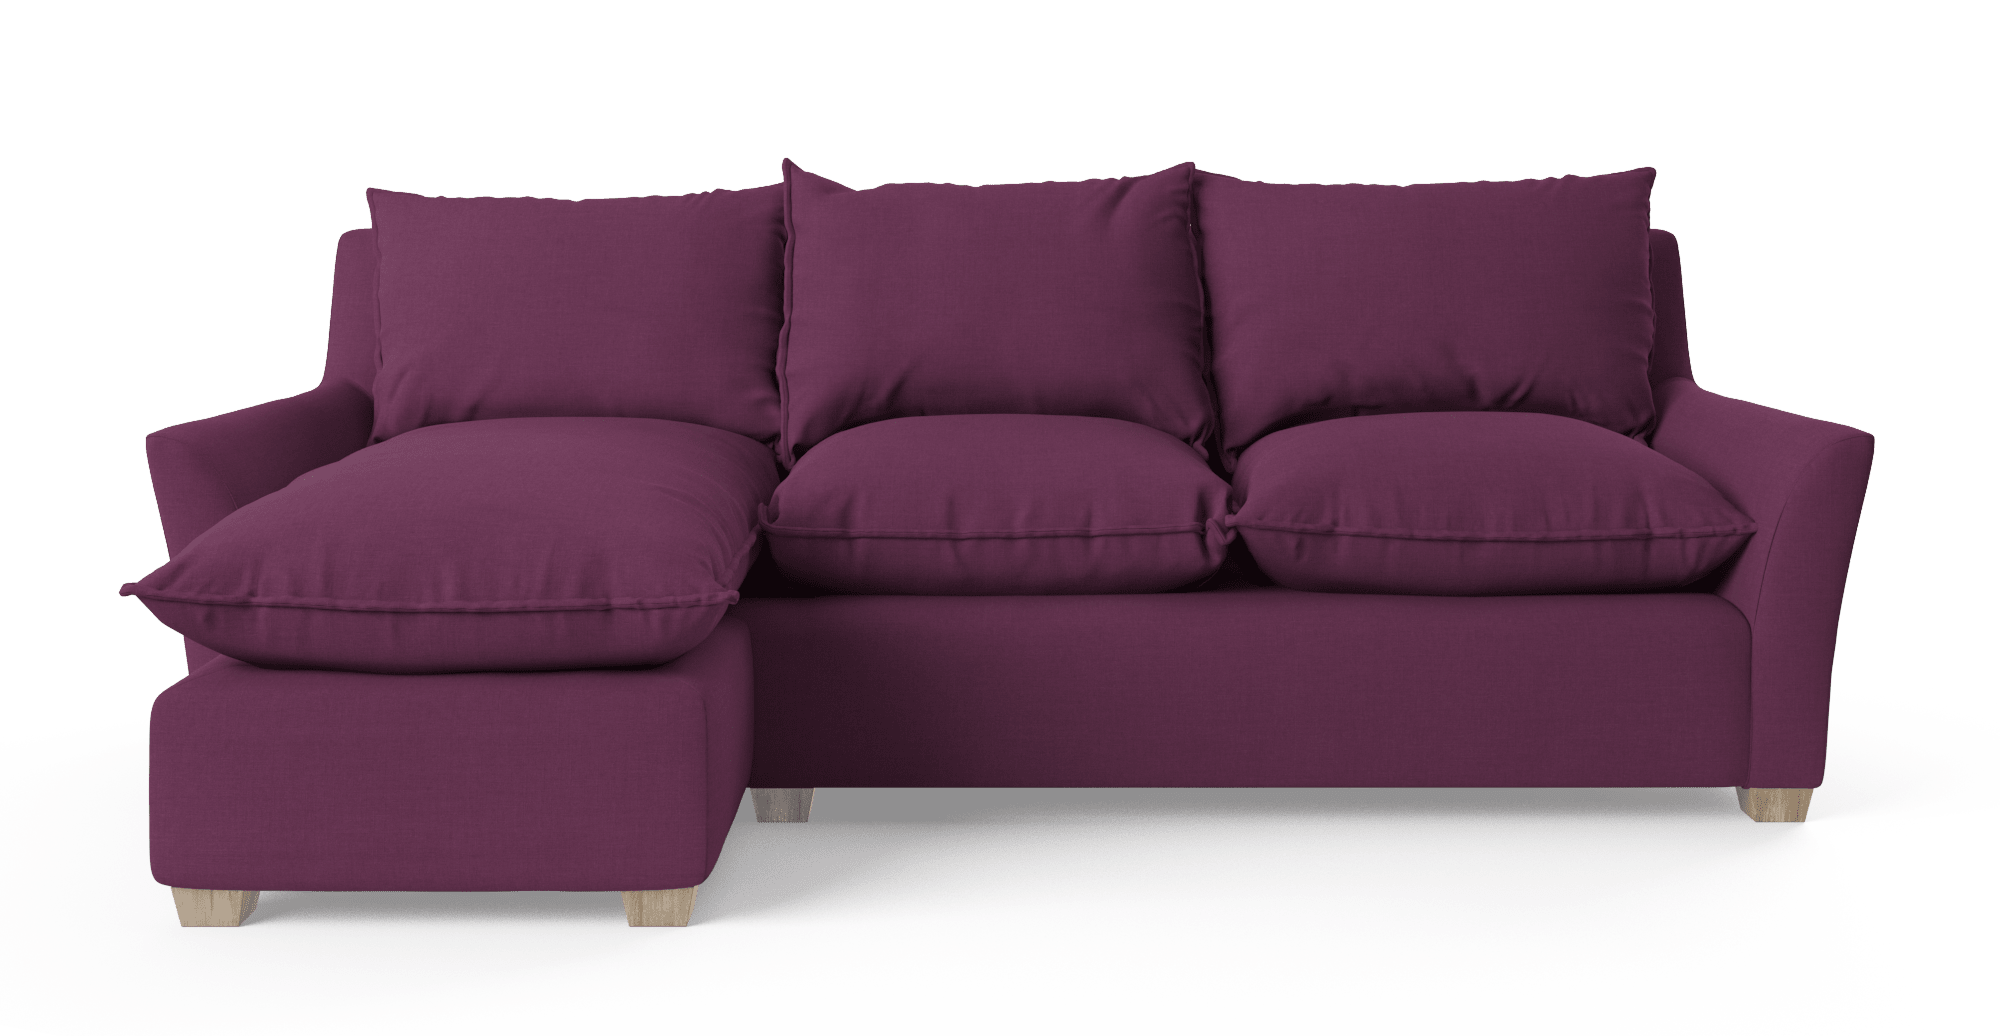 couches factory x epfbalancestatus with of brando photo smoke org sofa sale for chaise by outlet